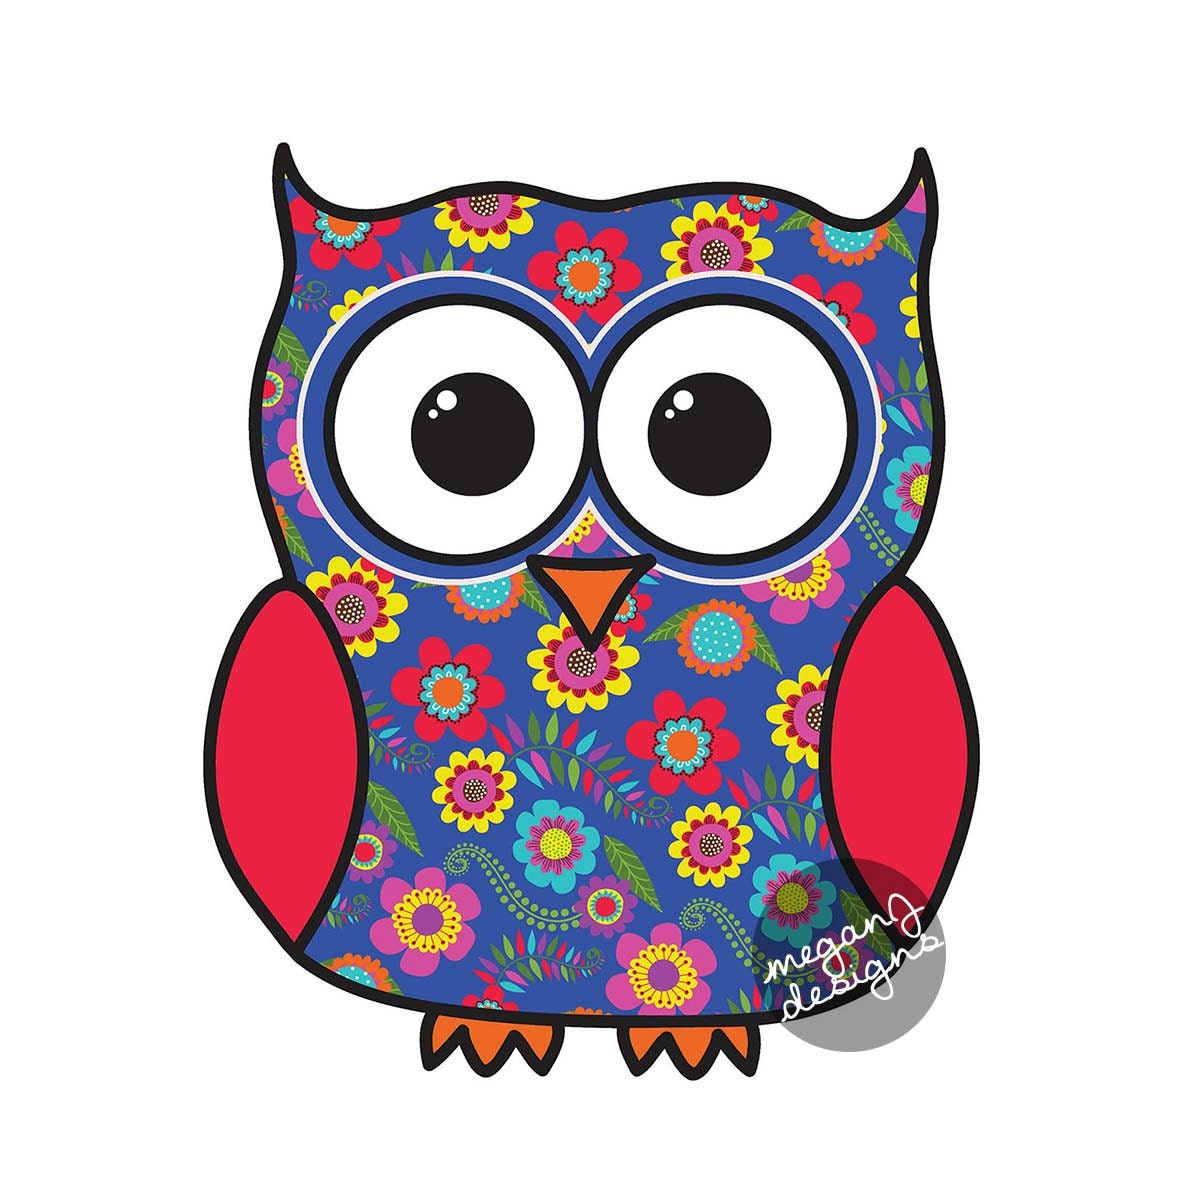 Blue Floral Owl Car Decal Sticker Cute Colorful Owl Bumper - Decals and stickers for cars